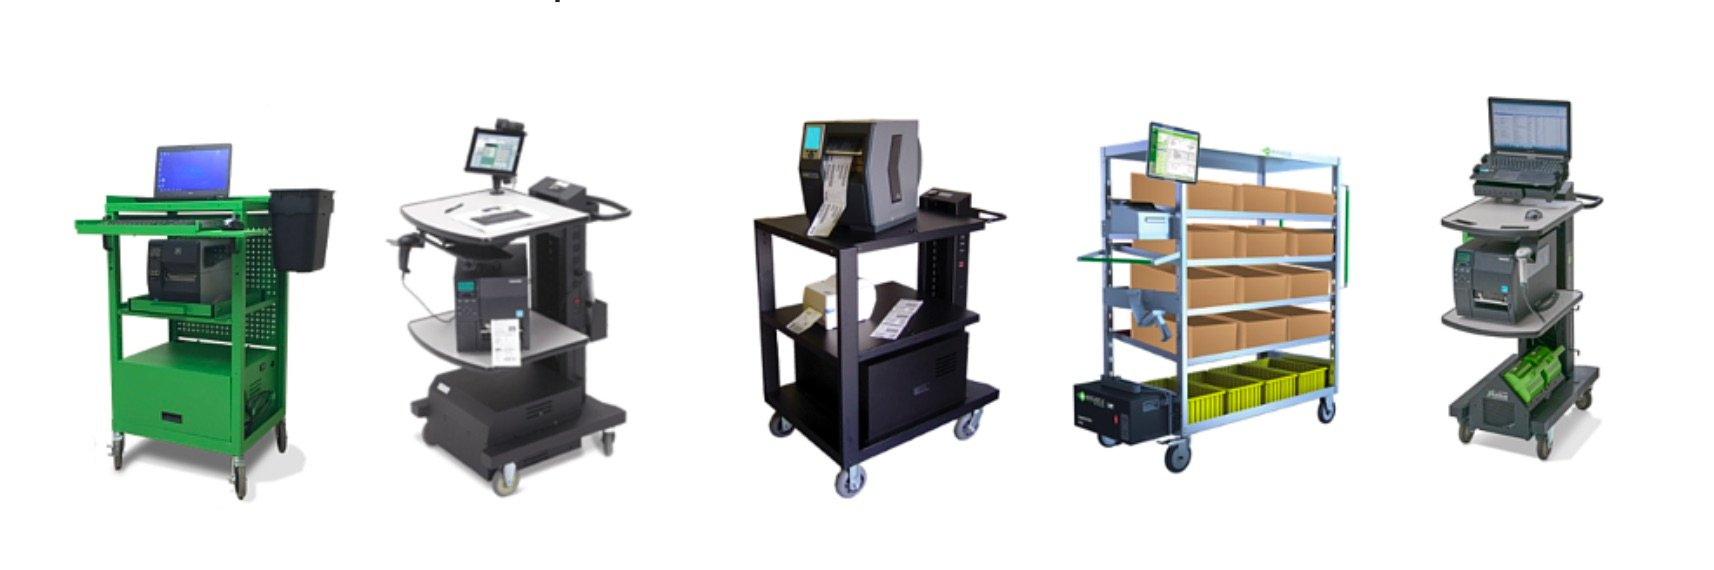 new castle carts | great for warehouses and libraries